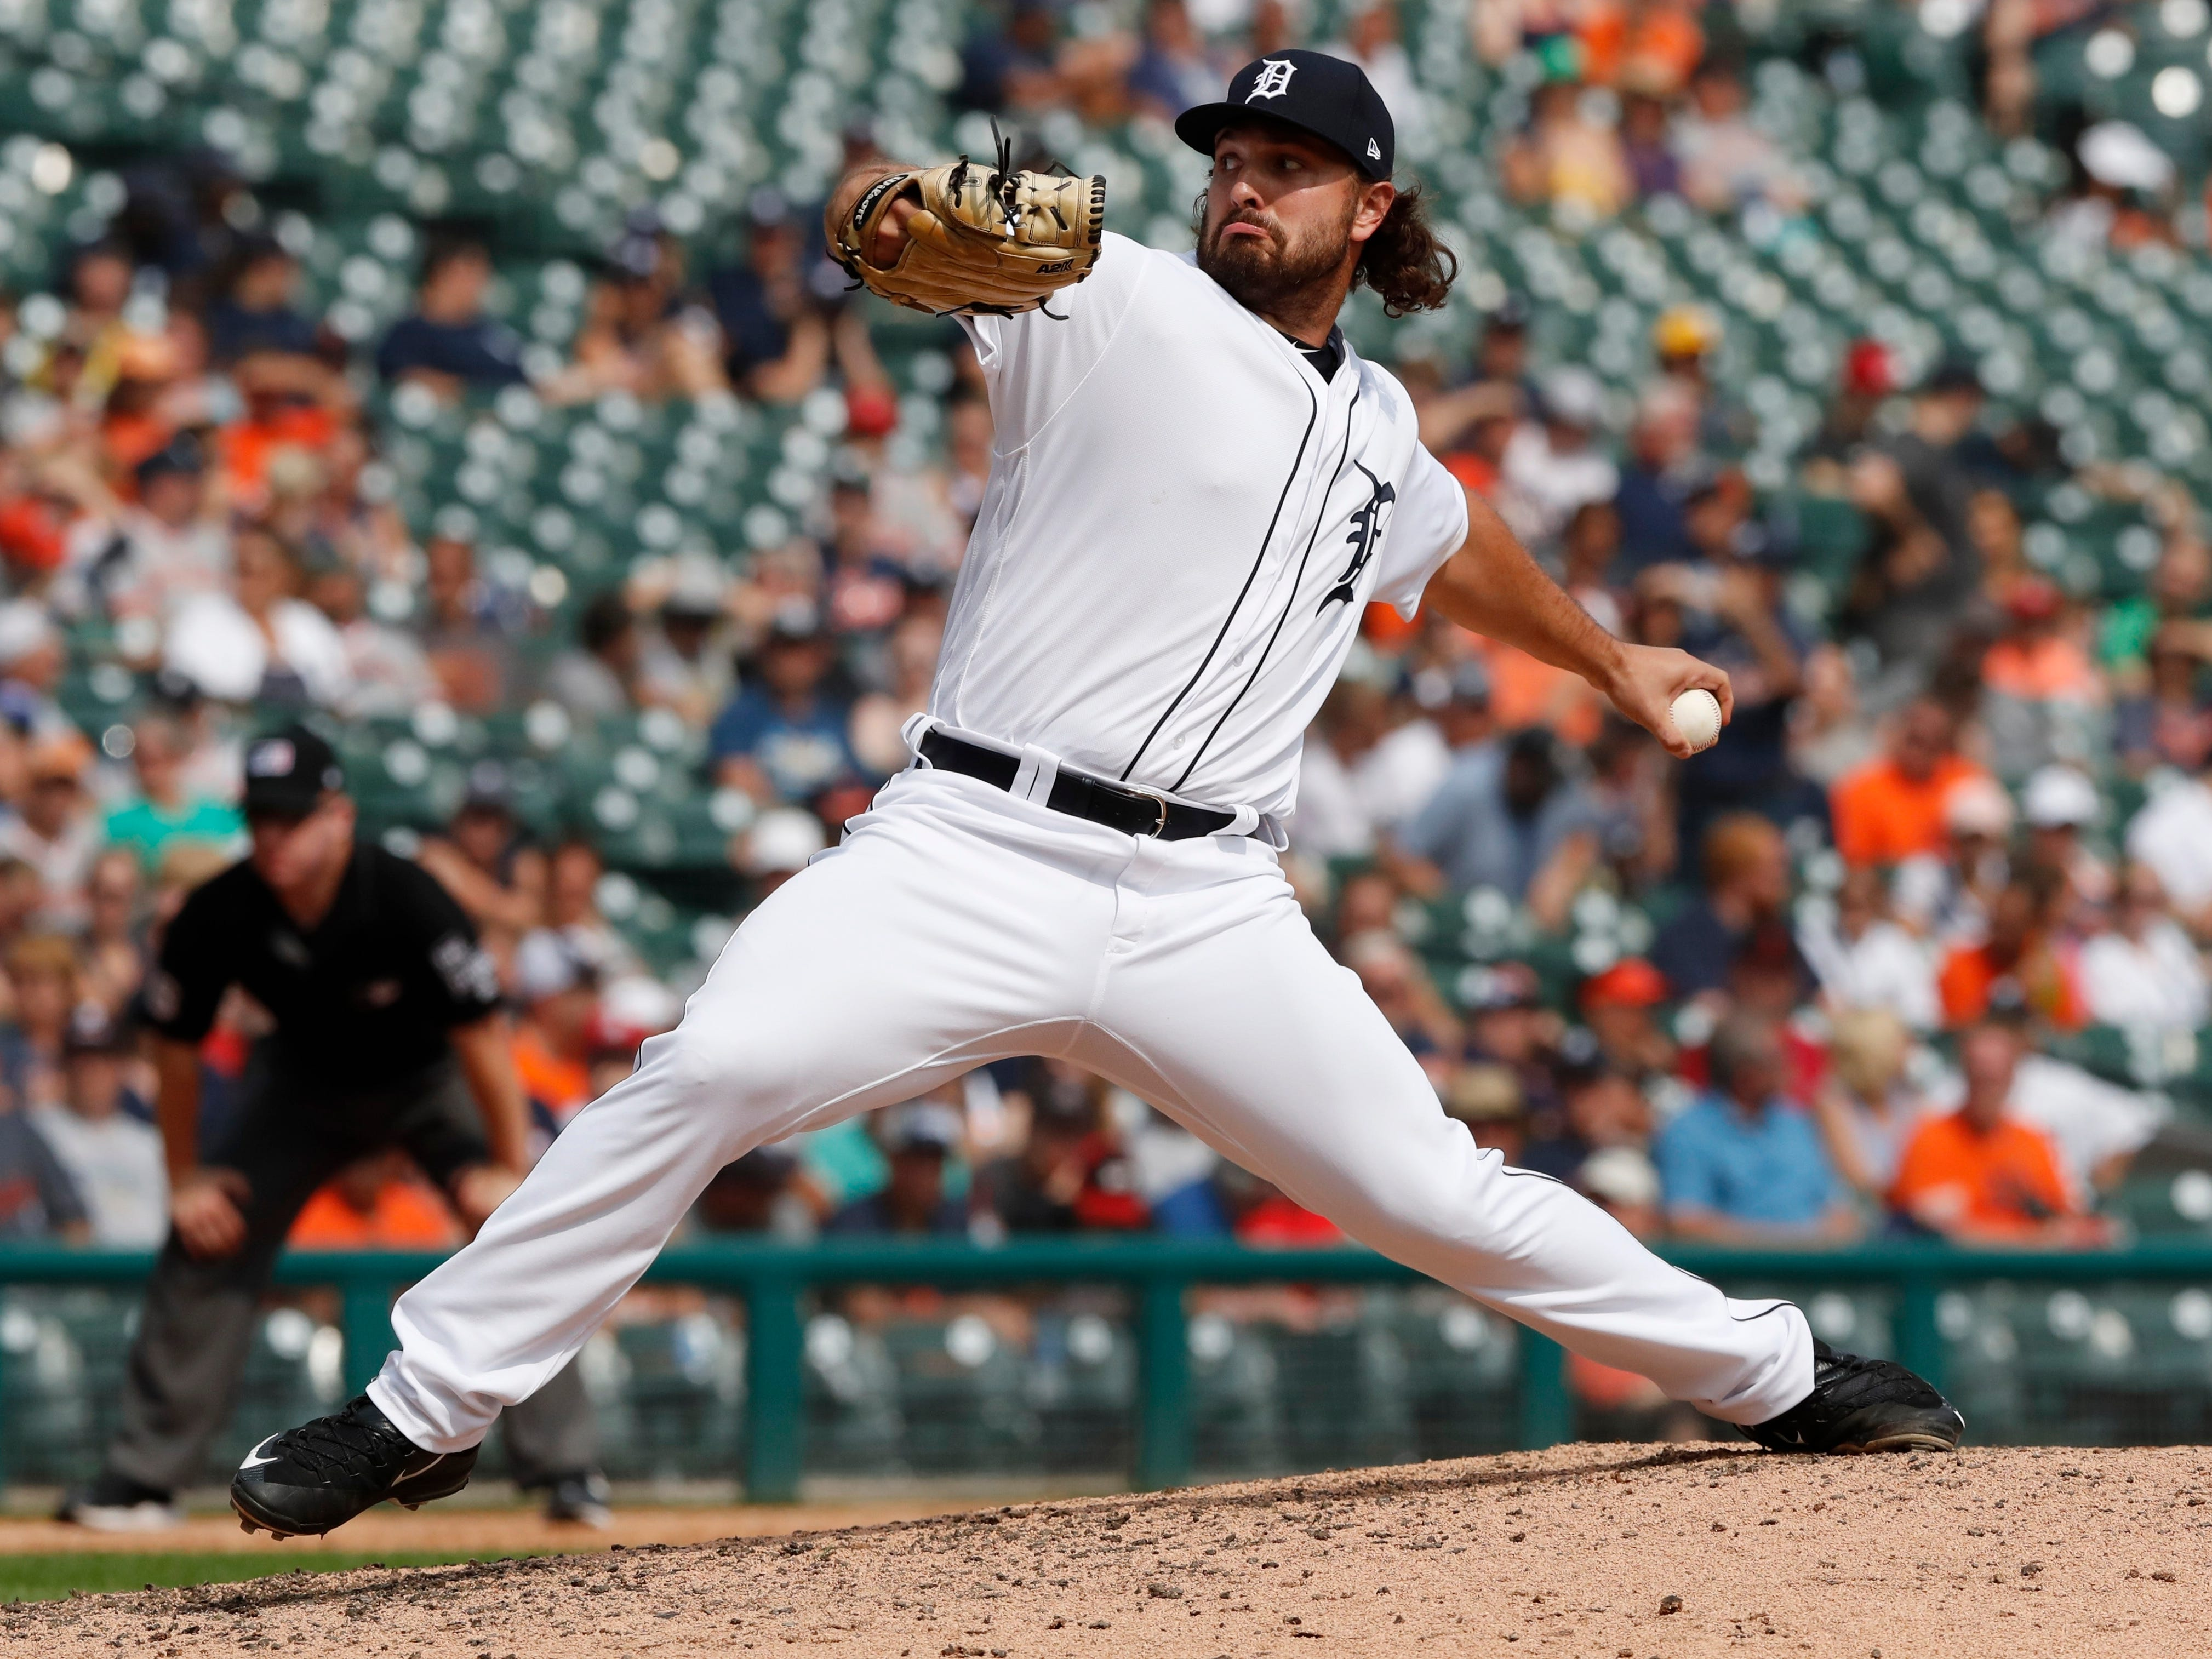 Detroit Tigers relief pitcher Josh Smoker throws during the seventh inning.